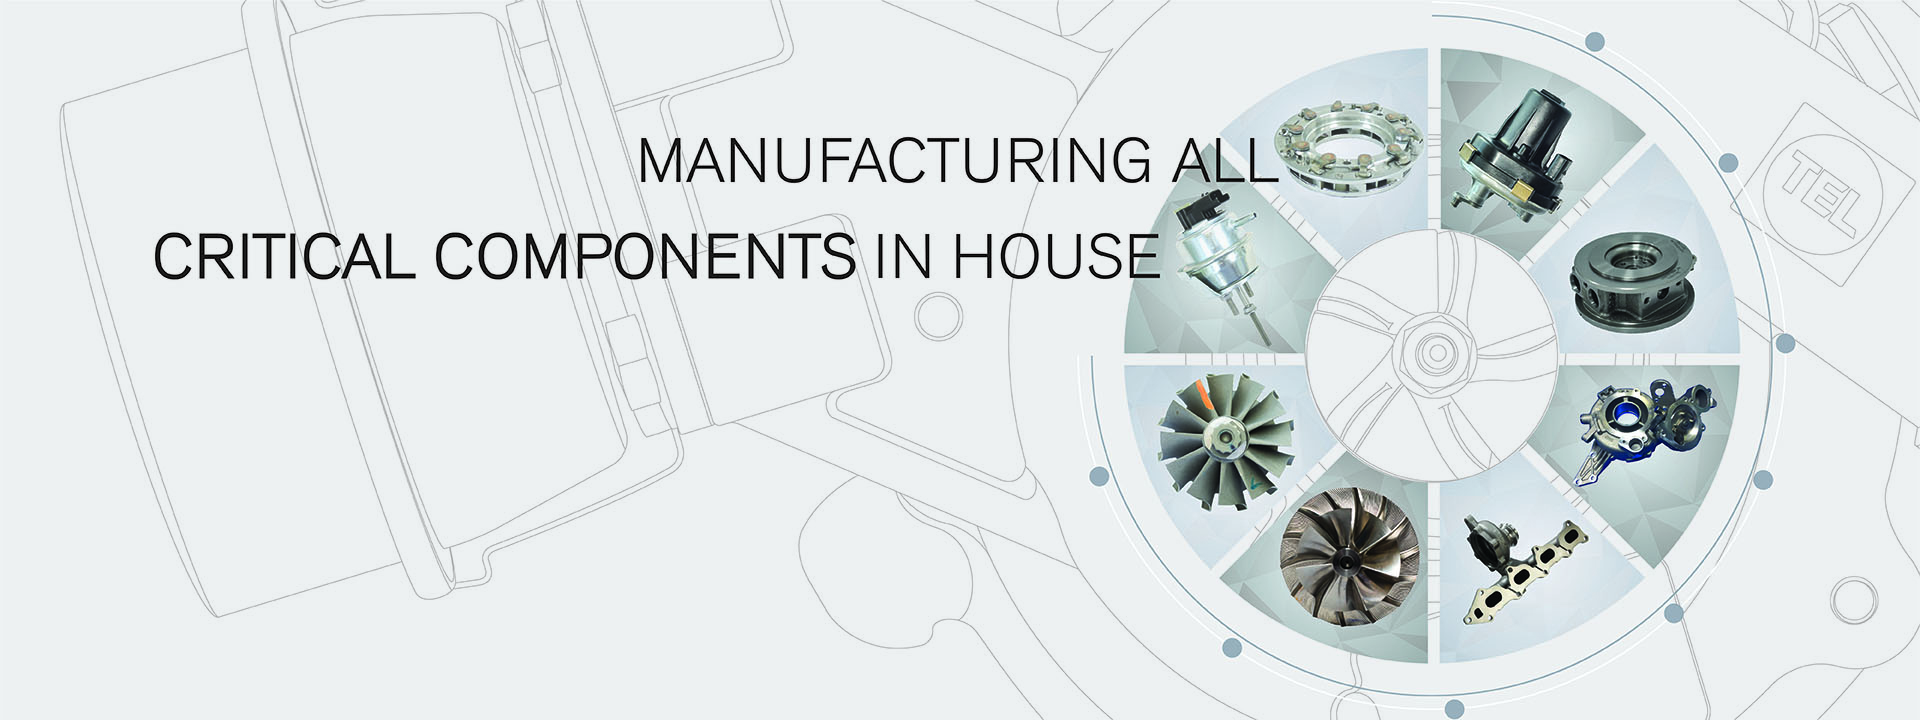 MANUFACTURING and QUALITY